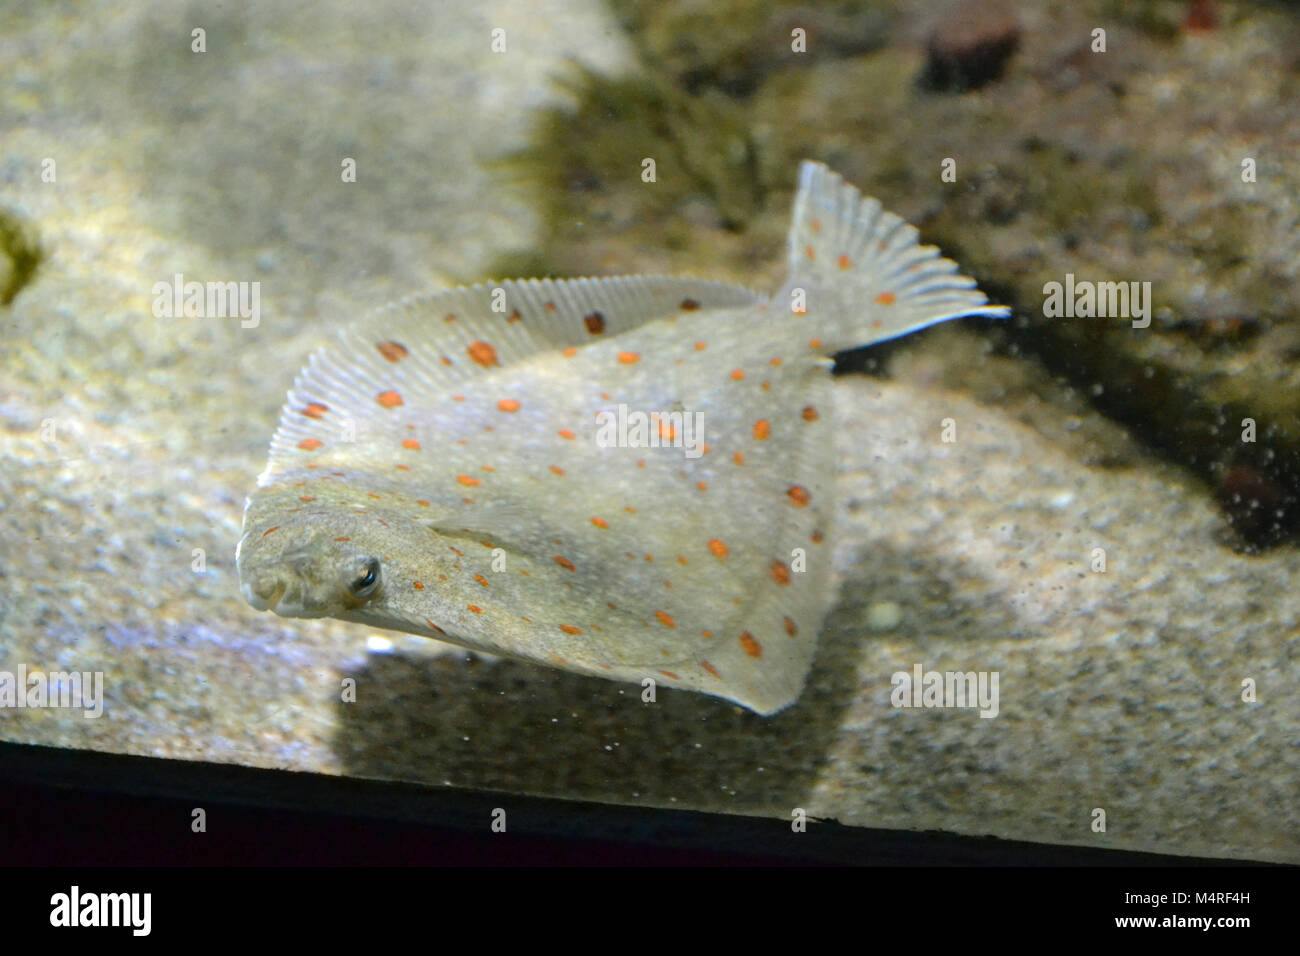 Flatfish hovering over the sand at Anglesey Sea Zoo, Aquarium - Stock Image